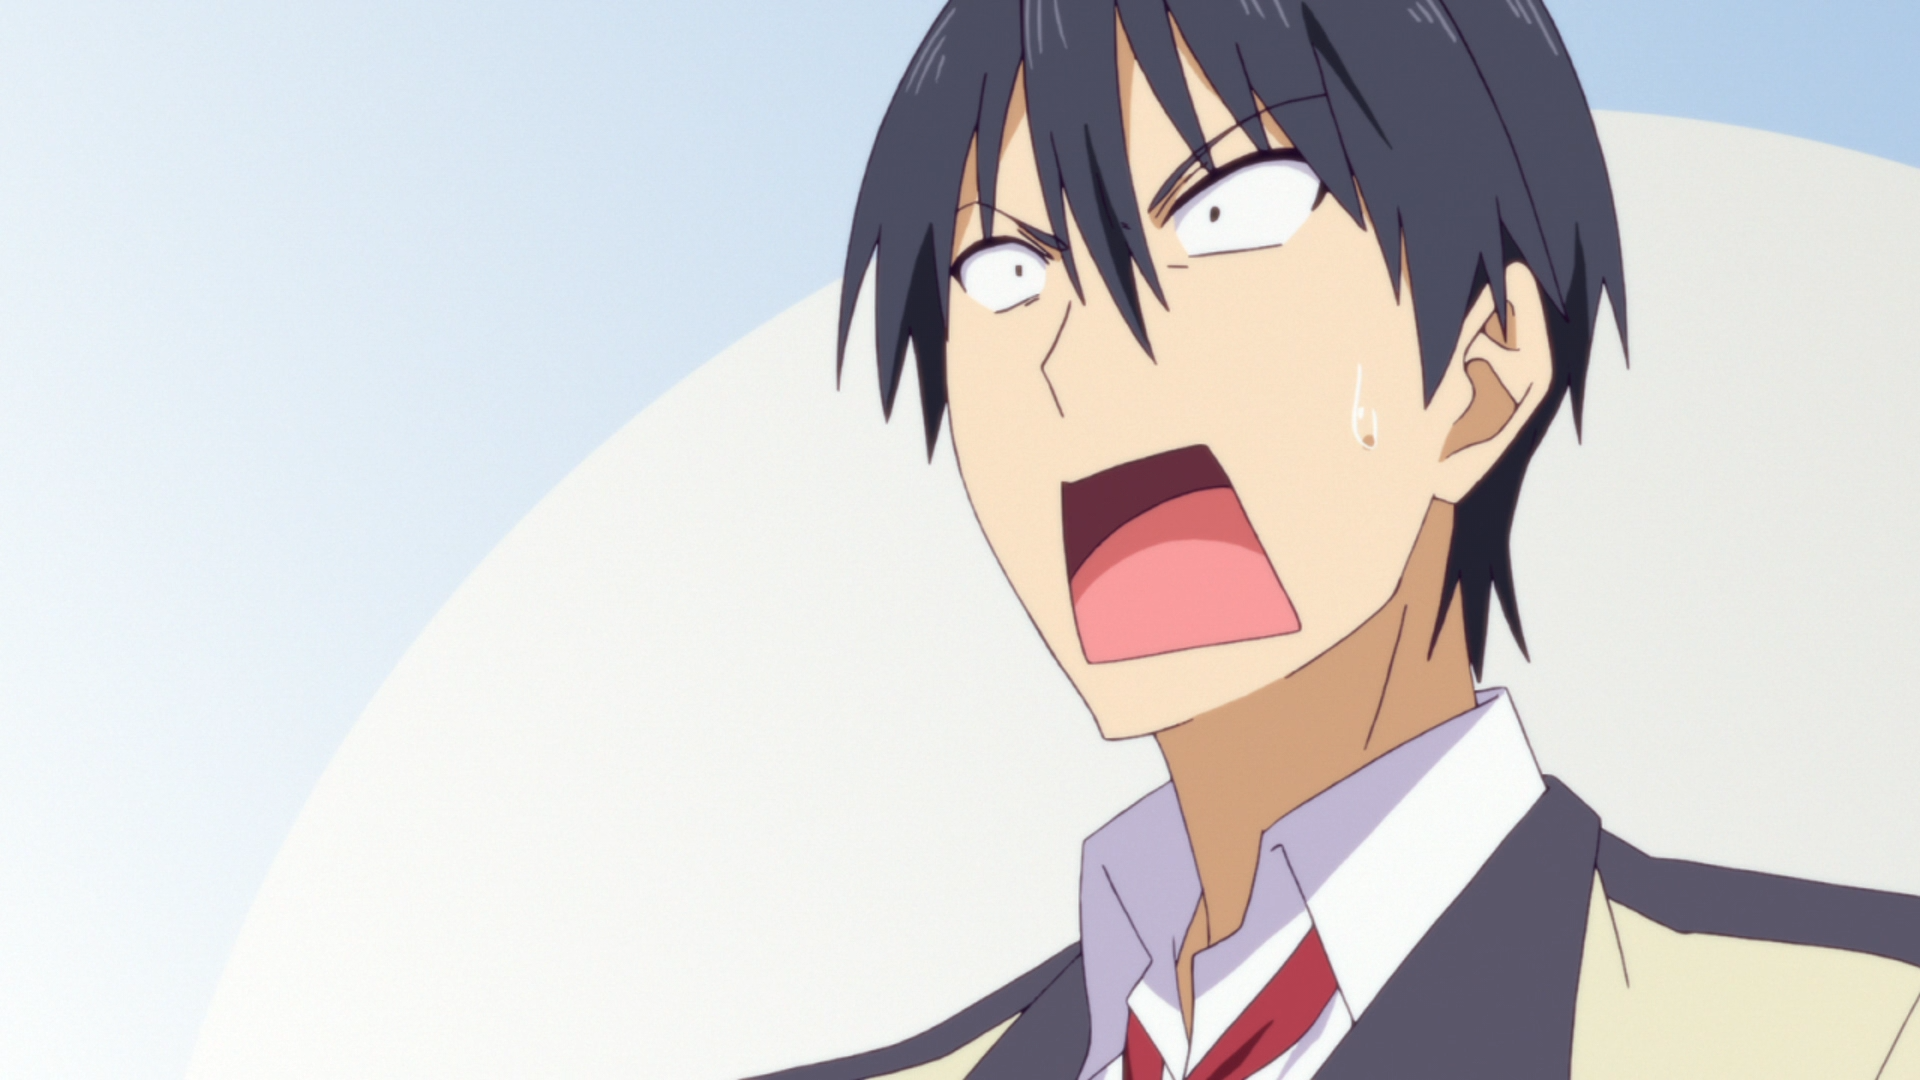 Akuru reacts with dismay to Yoshiko's antics in a scene from the 2017 TV anime, AHO-GIRL.